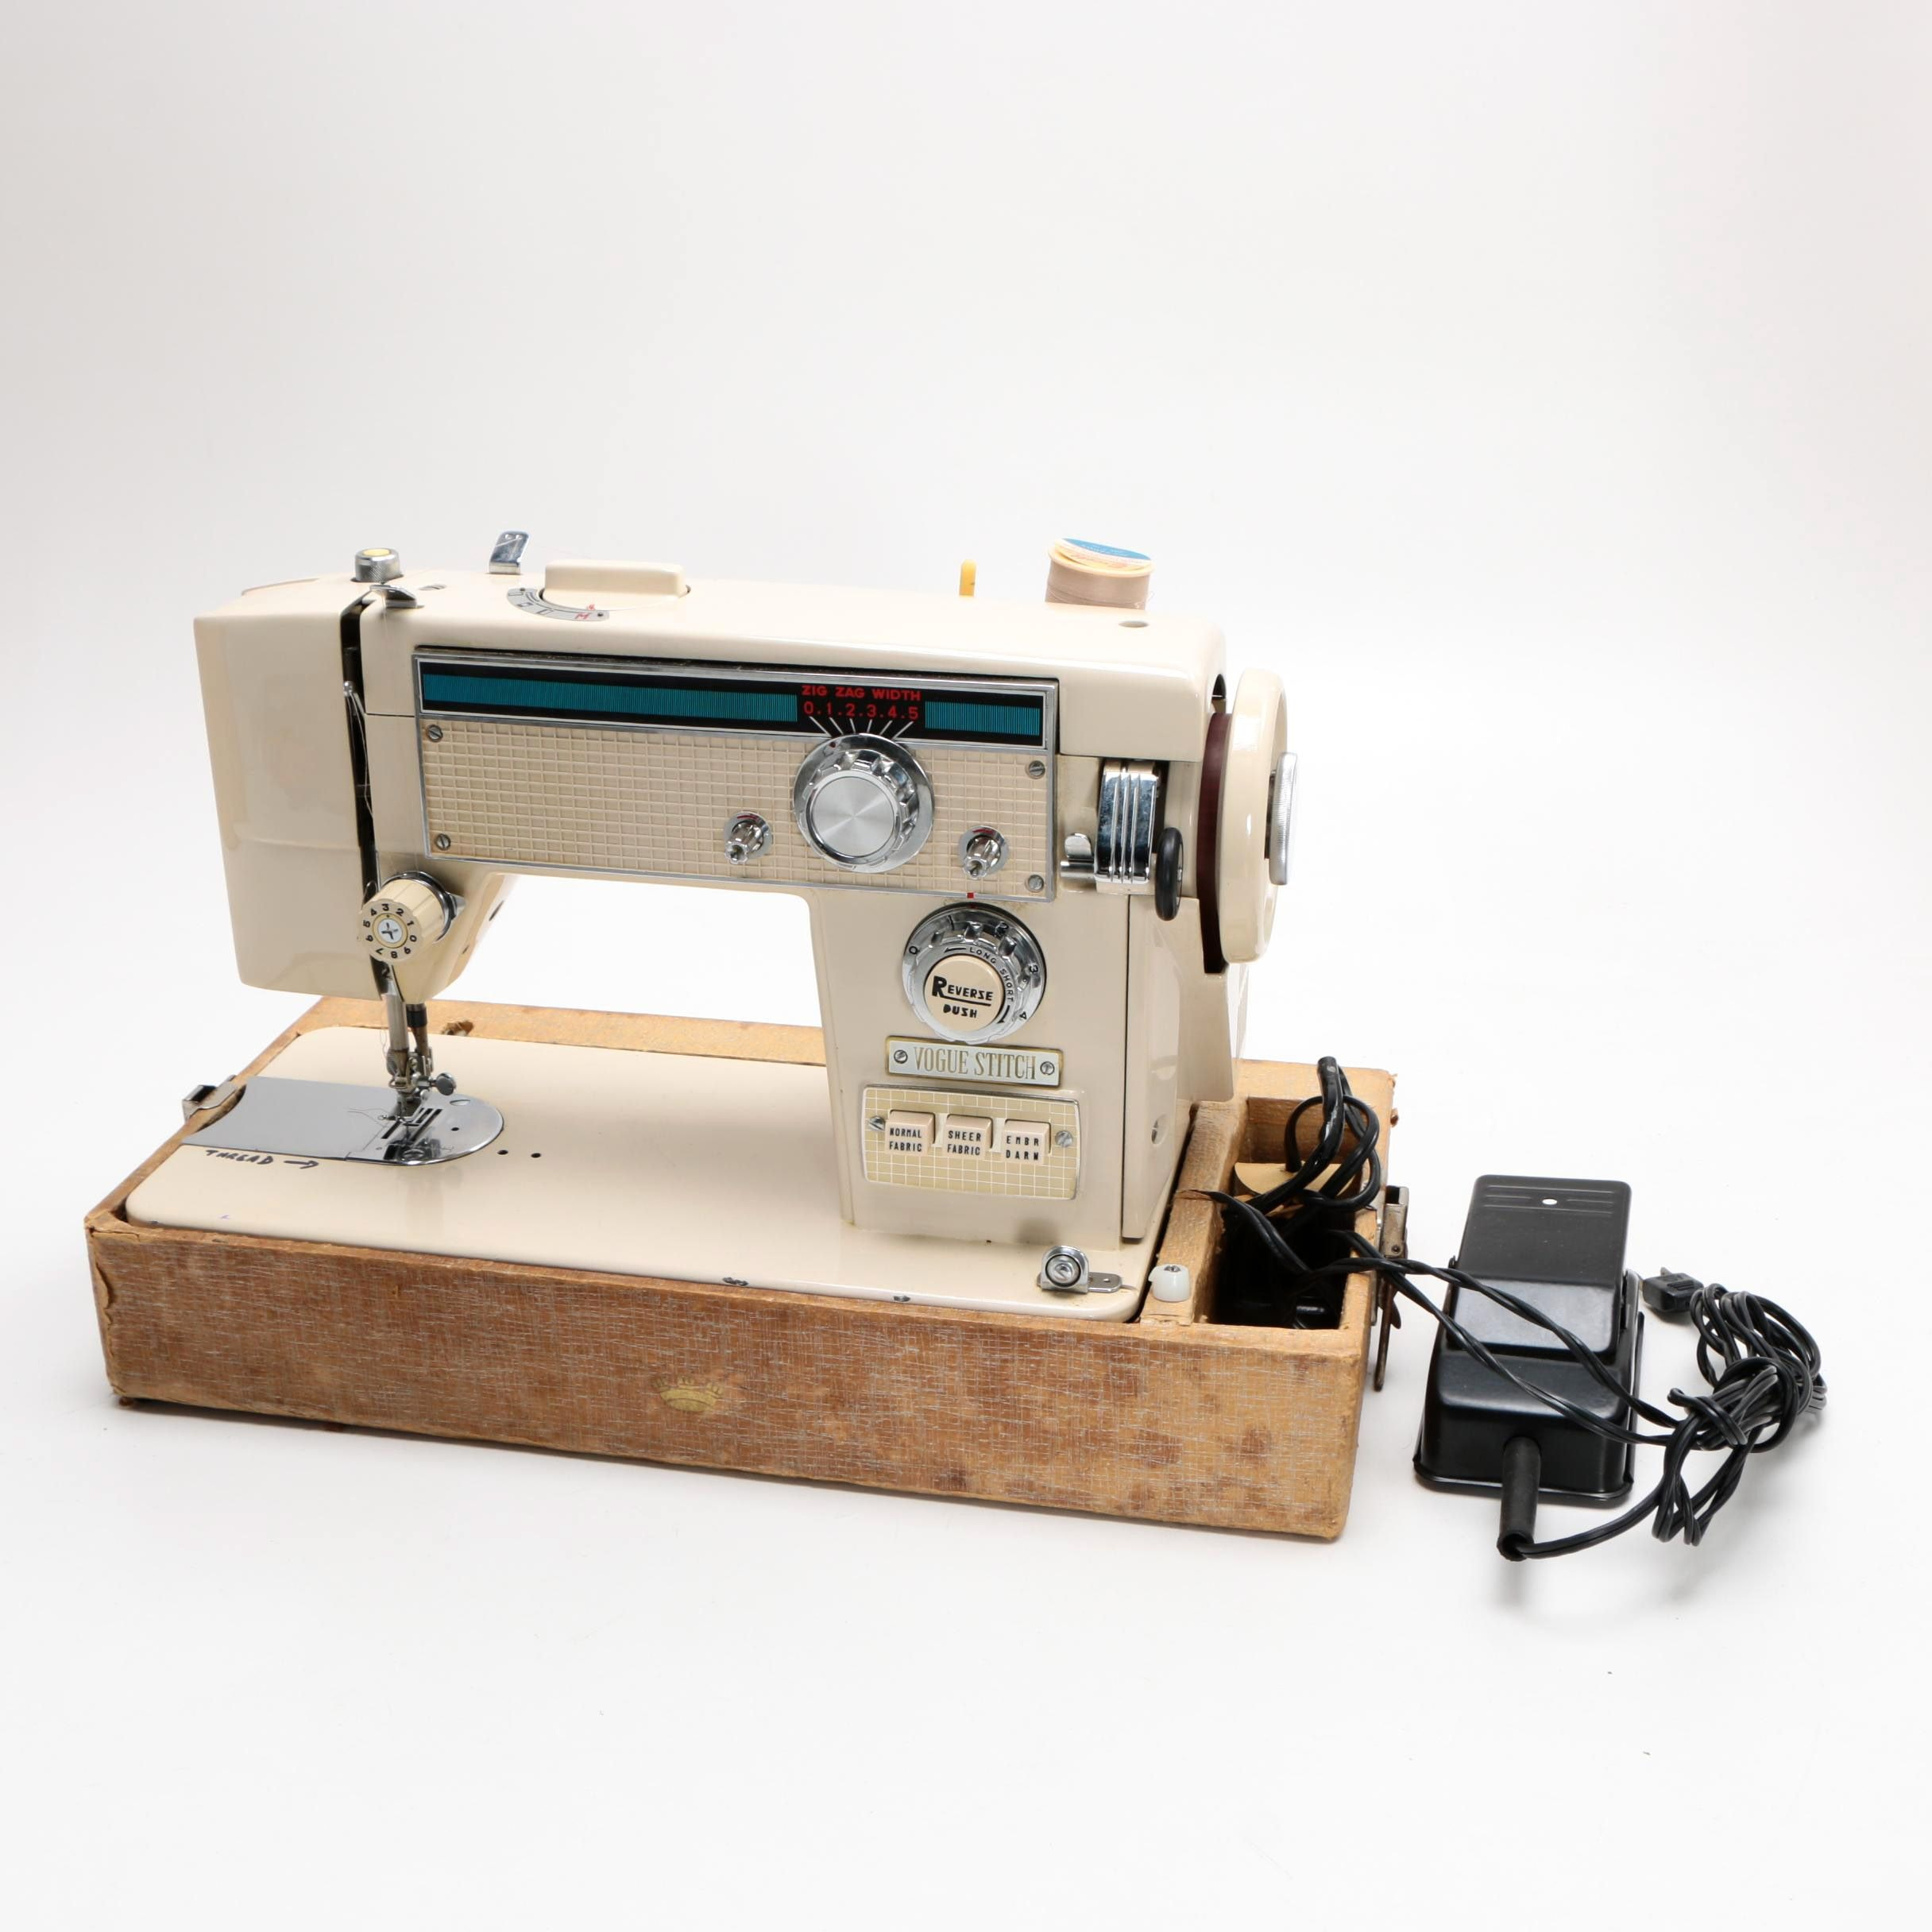 Circa 1960s Japanese Vogue Stitch Zig-Zag Portable Sewing Machine